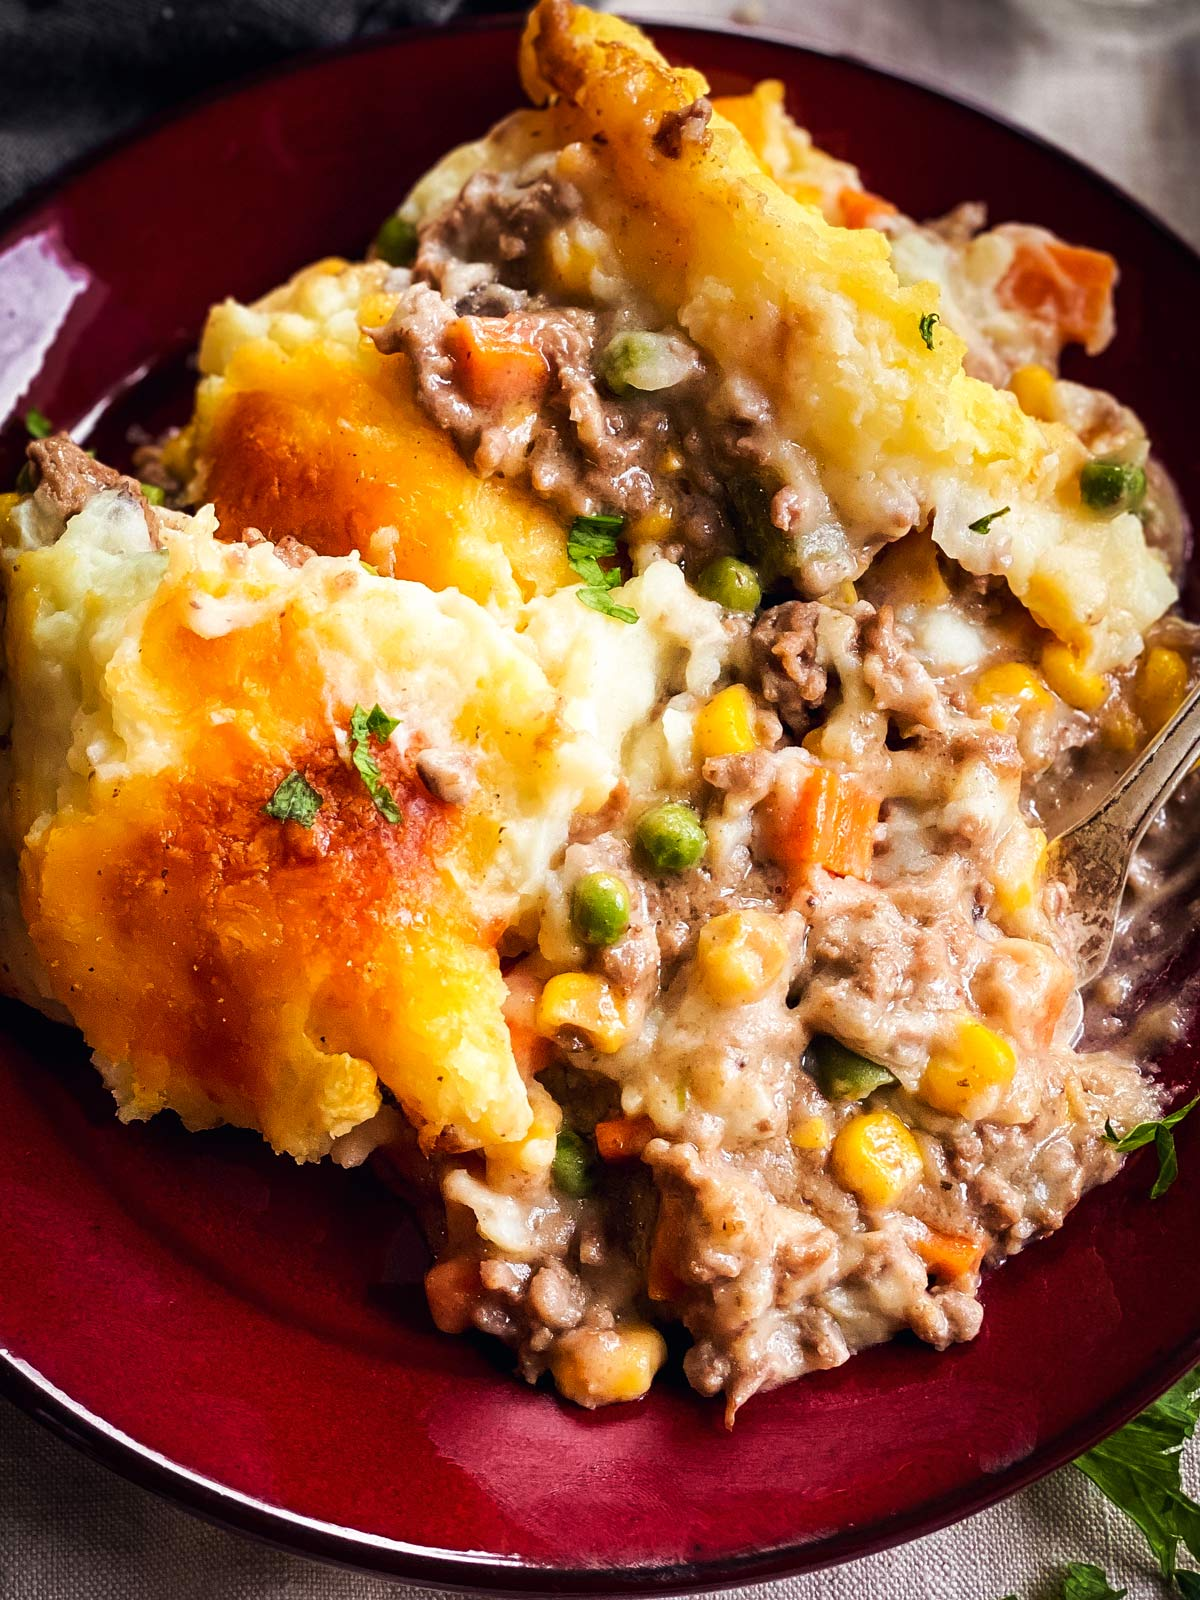 close up of shepherd's pie on red dinner plate